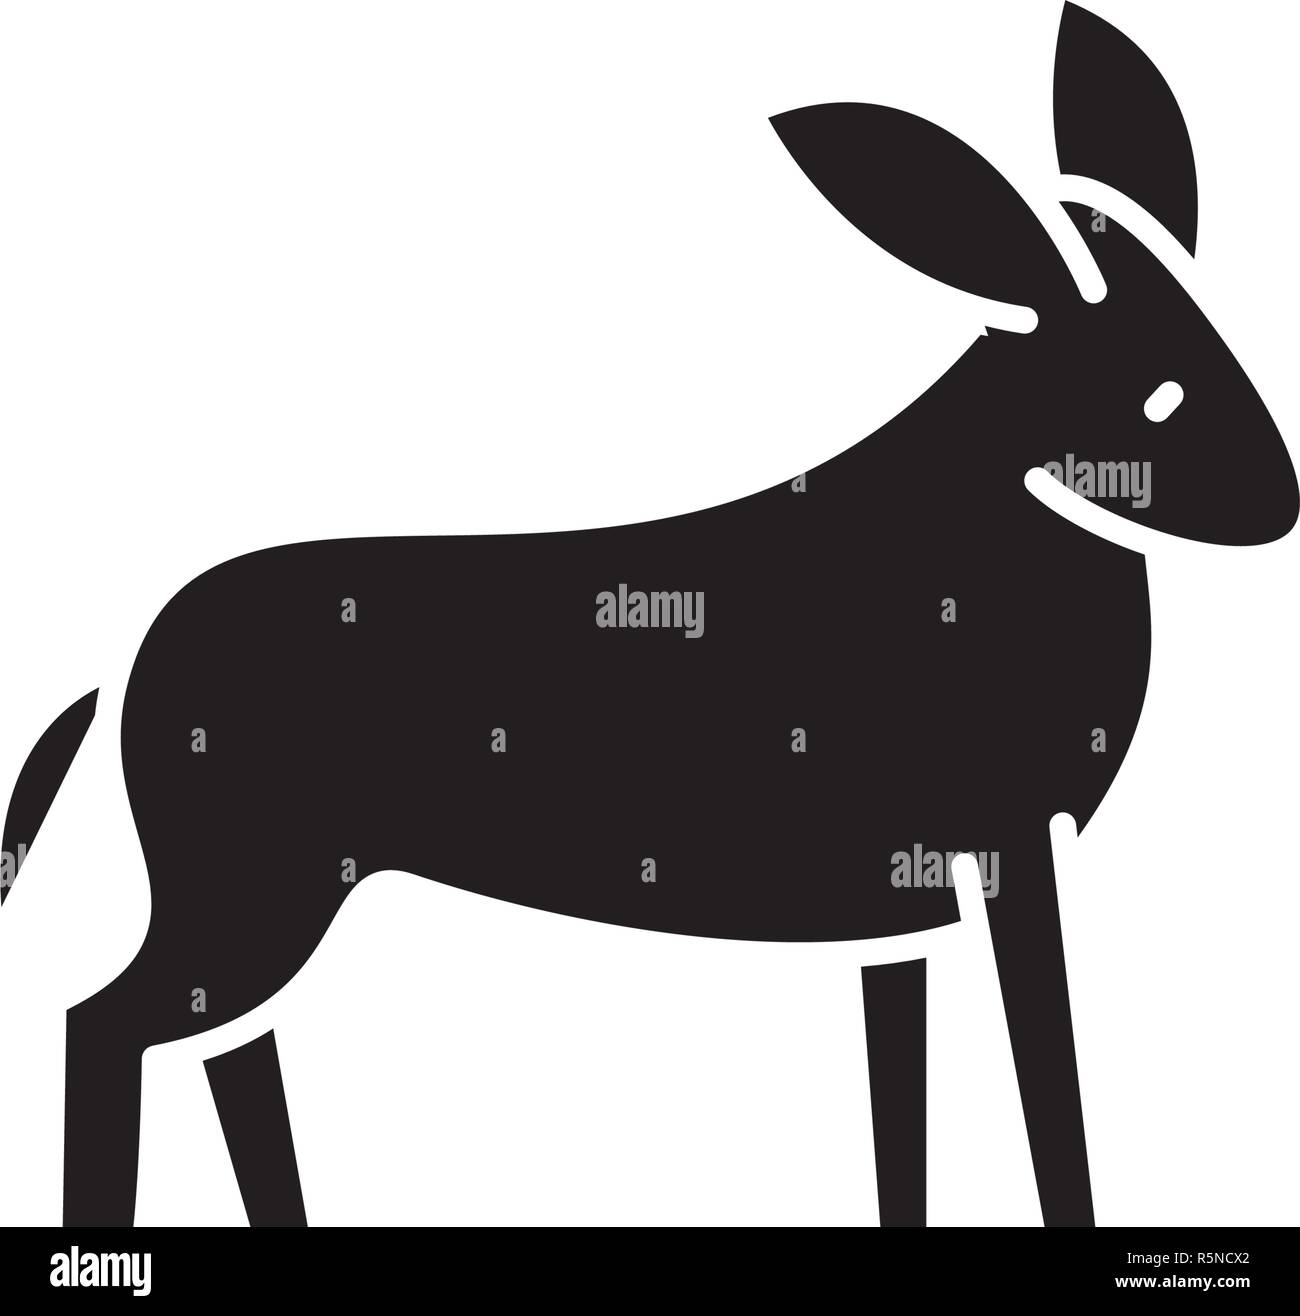 Donkey black icon, vector sign on isolated background. Donkey concept symbol, illustration  - Stock Image